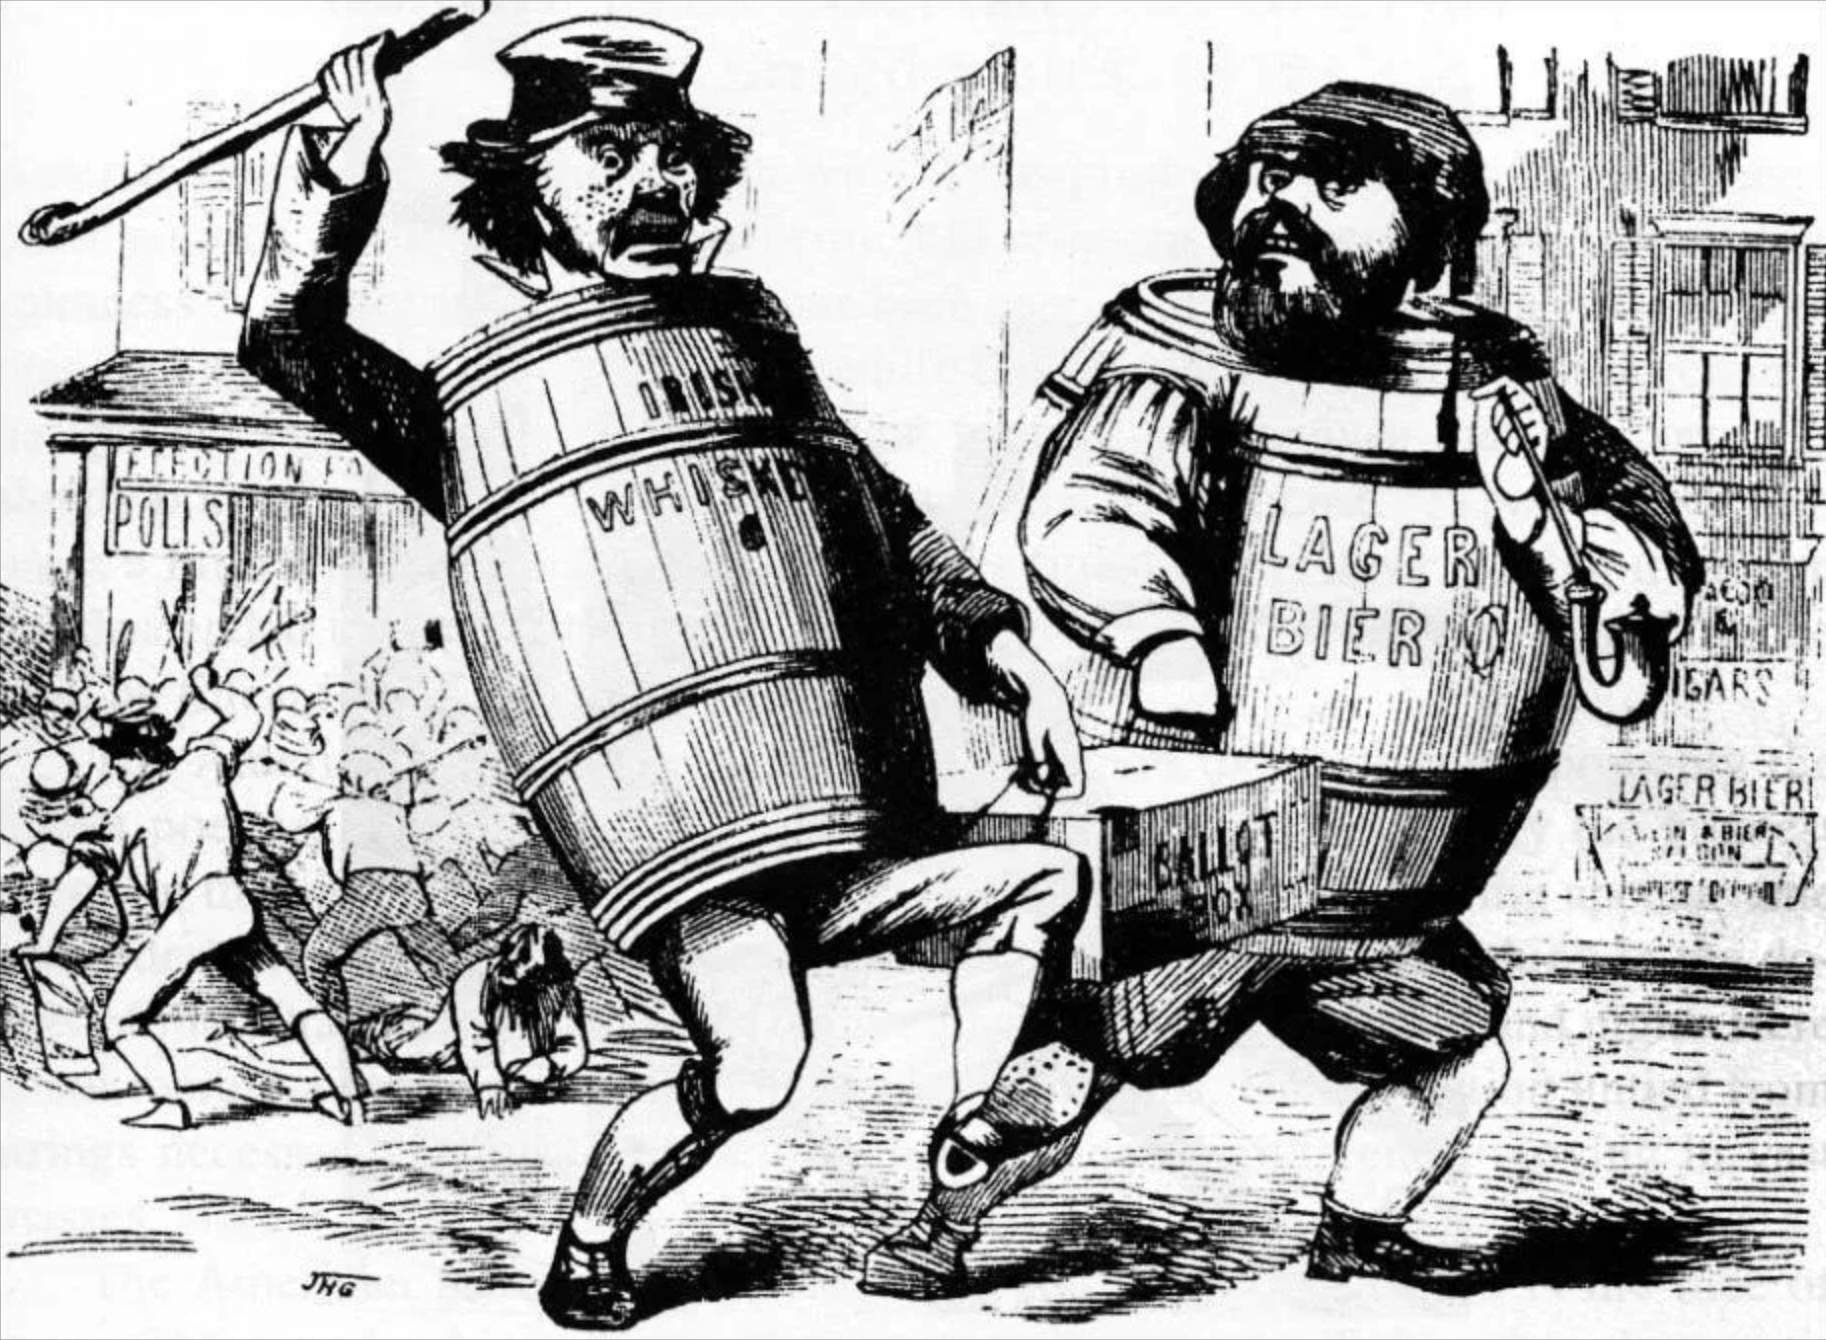 """1850s political cartoon, likely penned by political cartoonist John H. Goater, showing caricatures representing Irish and German voters """"stealing an election."""""""